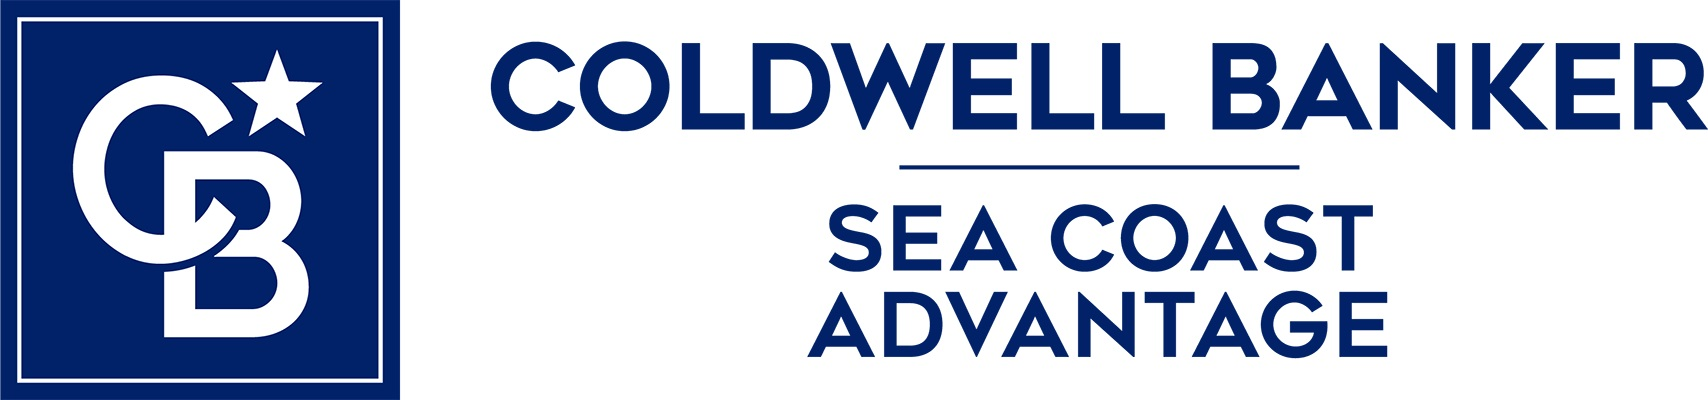 Nancy Strickland - Coldwell Banker Sea Coast Advantage Realty